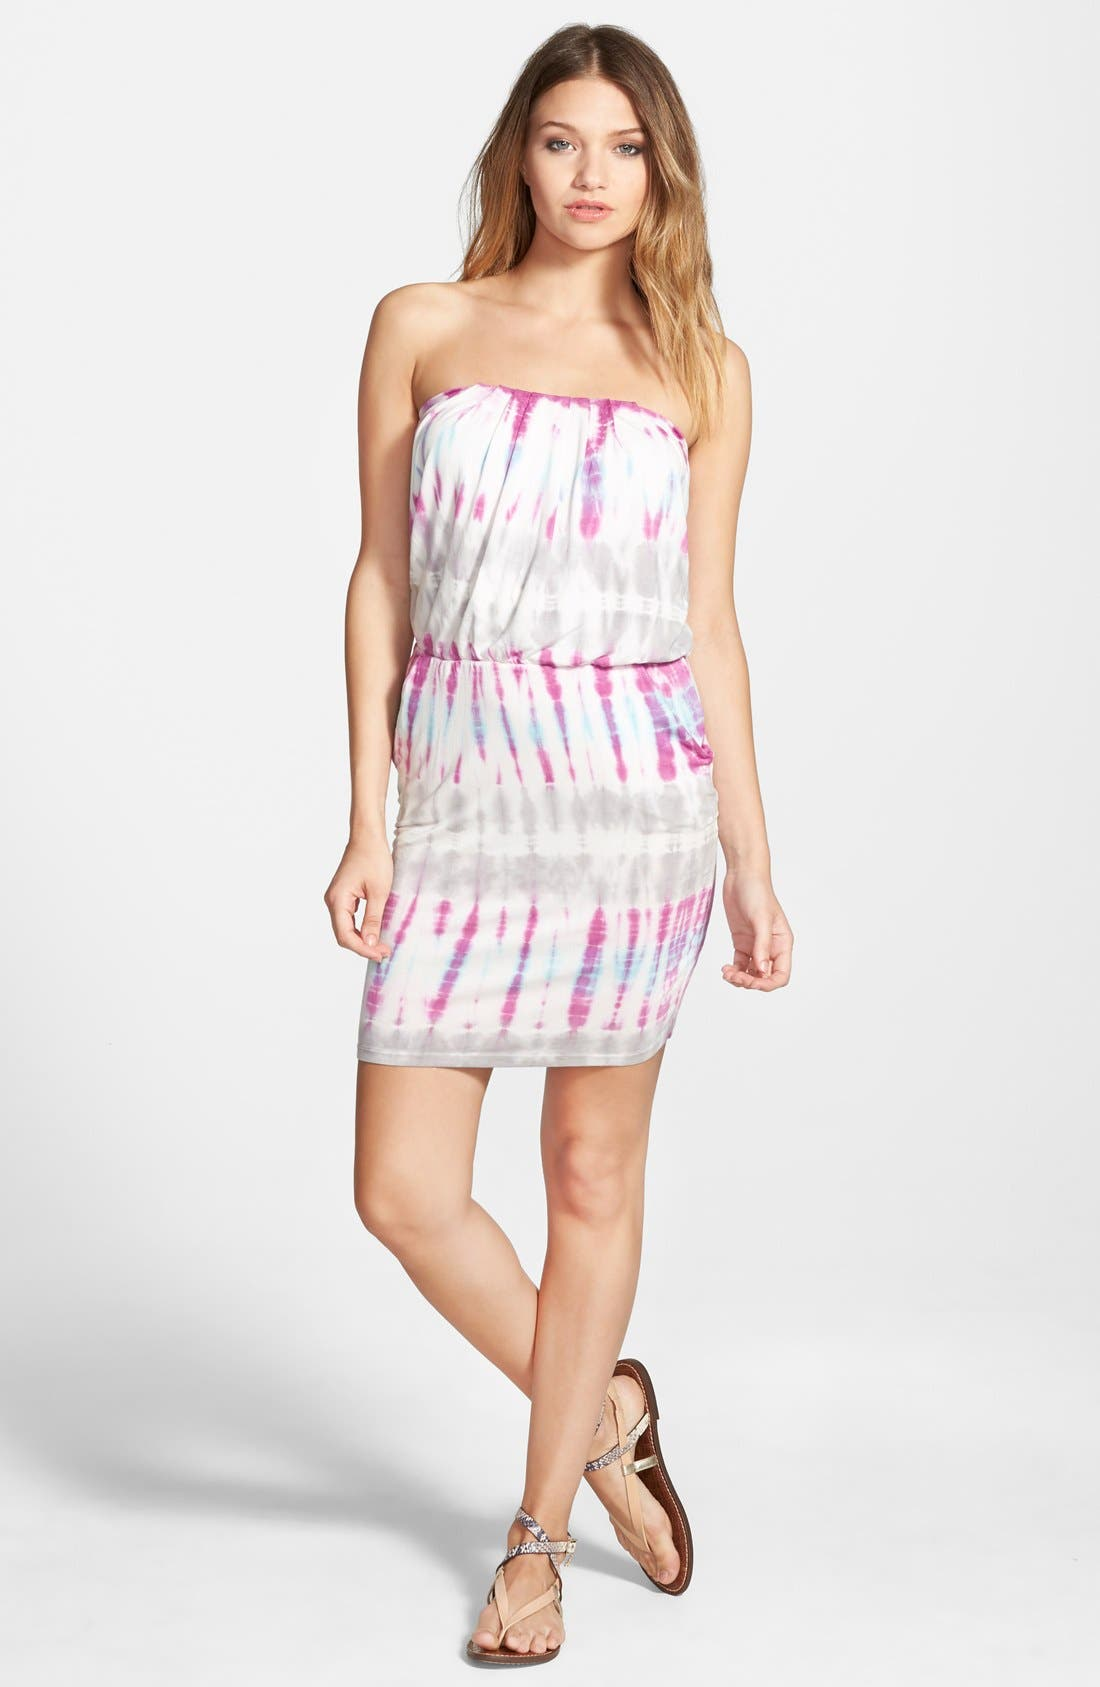 Alternate Image 1 Selected - Young, Fabulous & Broke 'Freya' Strapless Tie Dye Dress